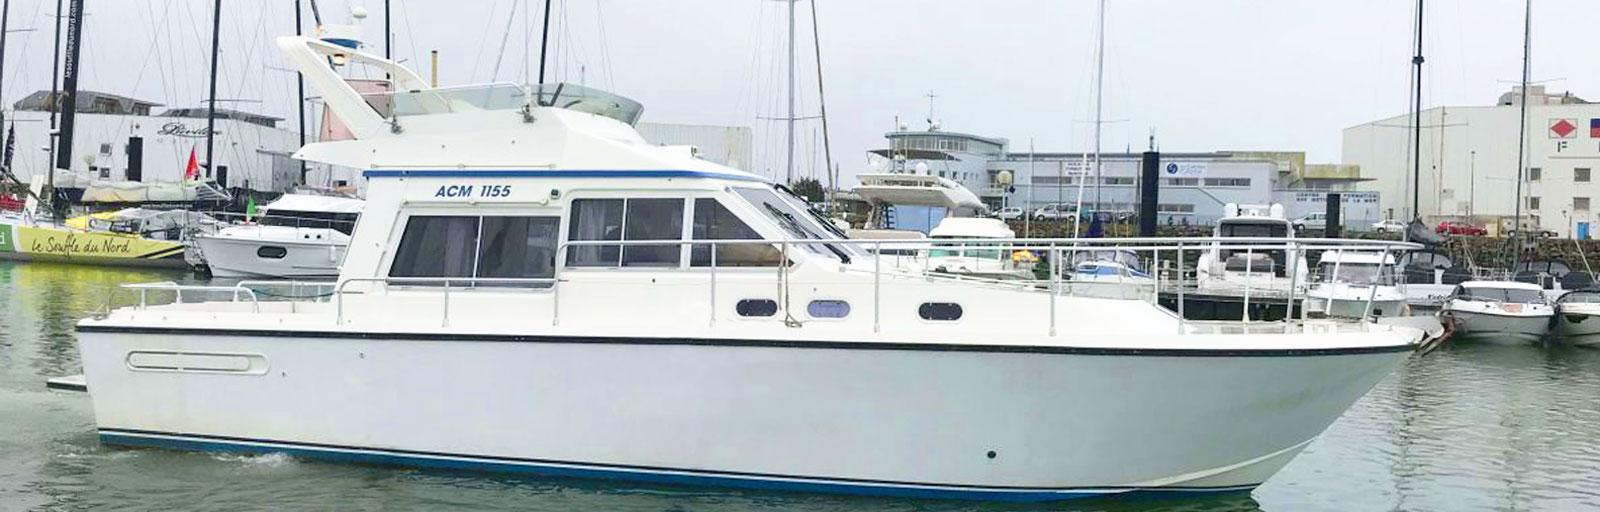 AYC Yachtbrokers - ACM 1155 Fly